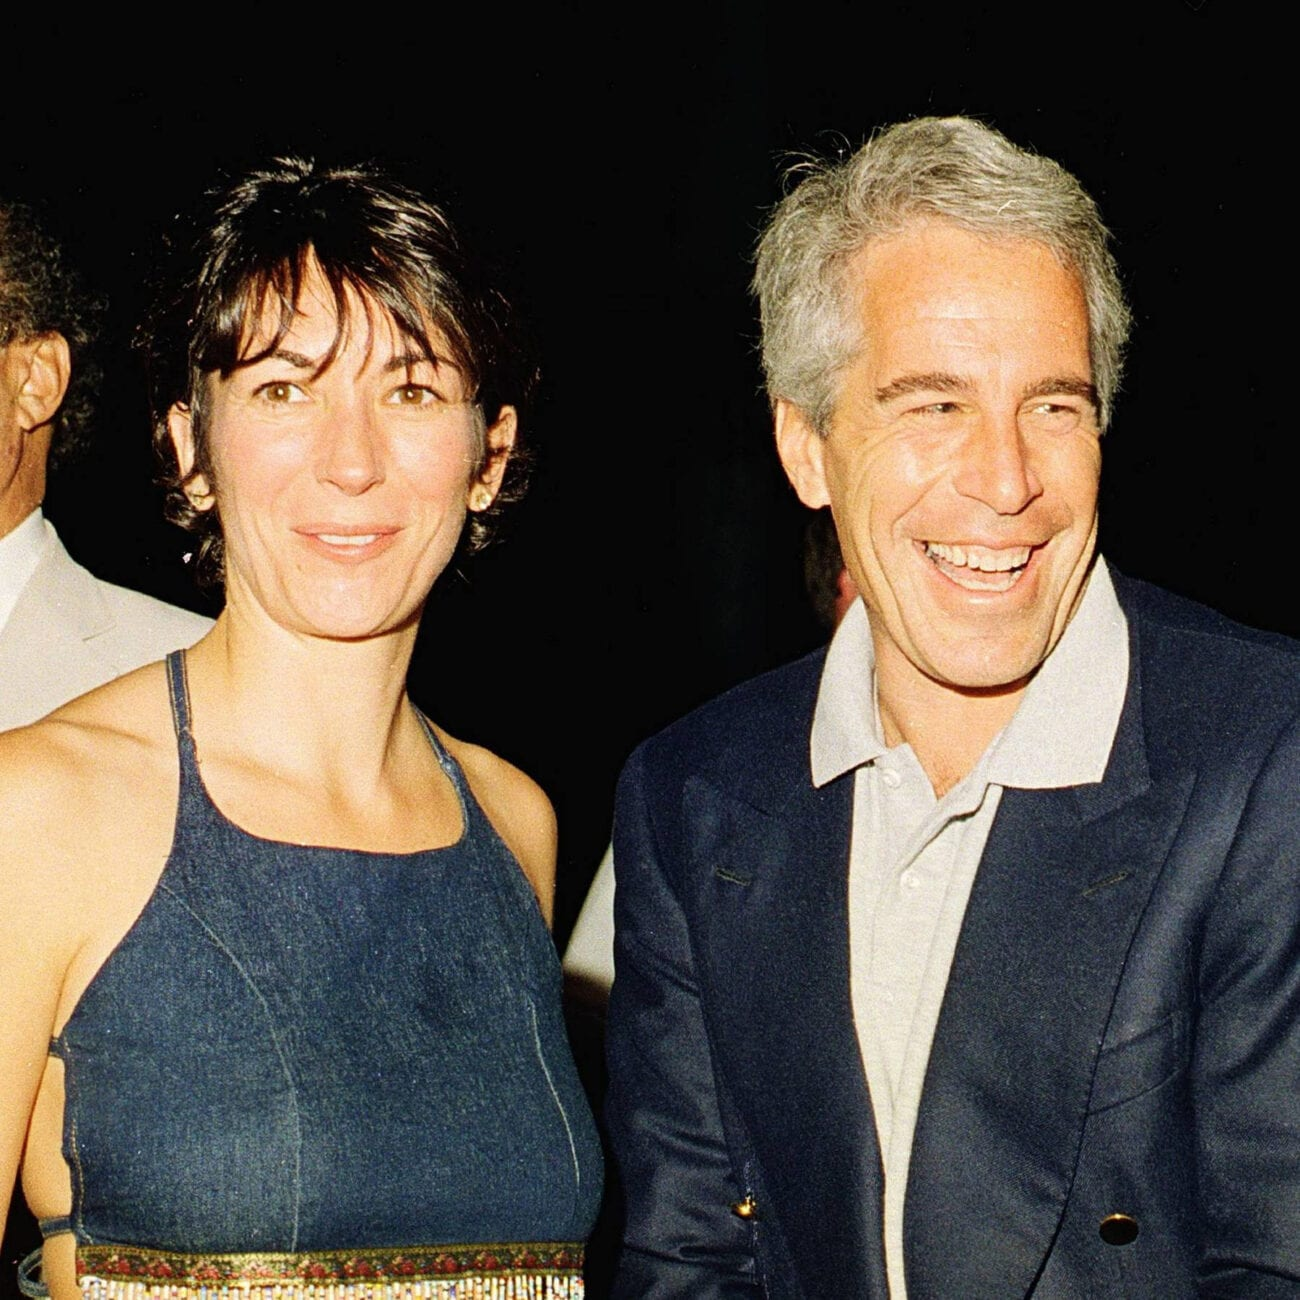 When will the next batch of documents about the Jeffrey Epstein case drop? Walk through the legal process that the court outlined for releasing new info.